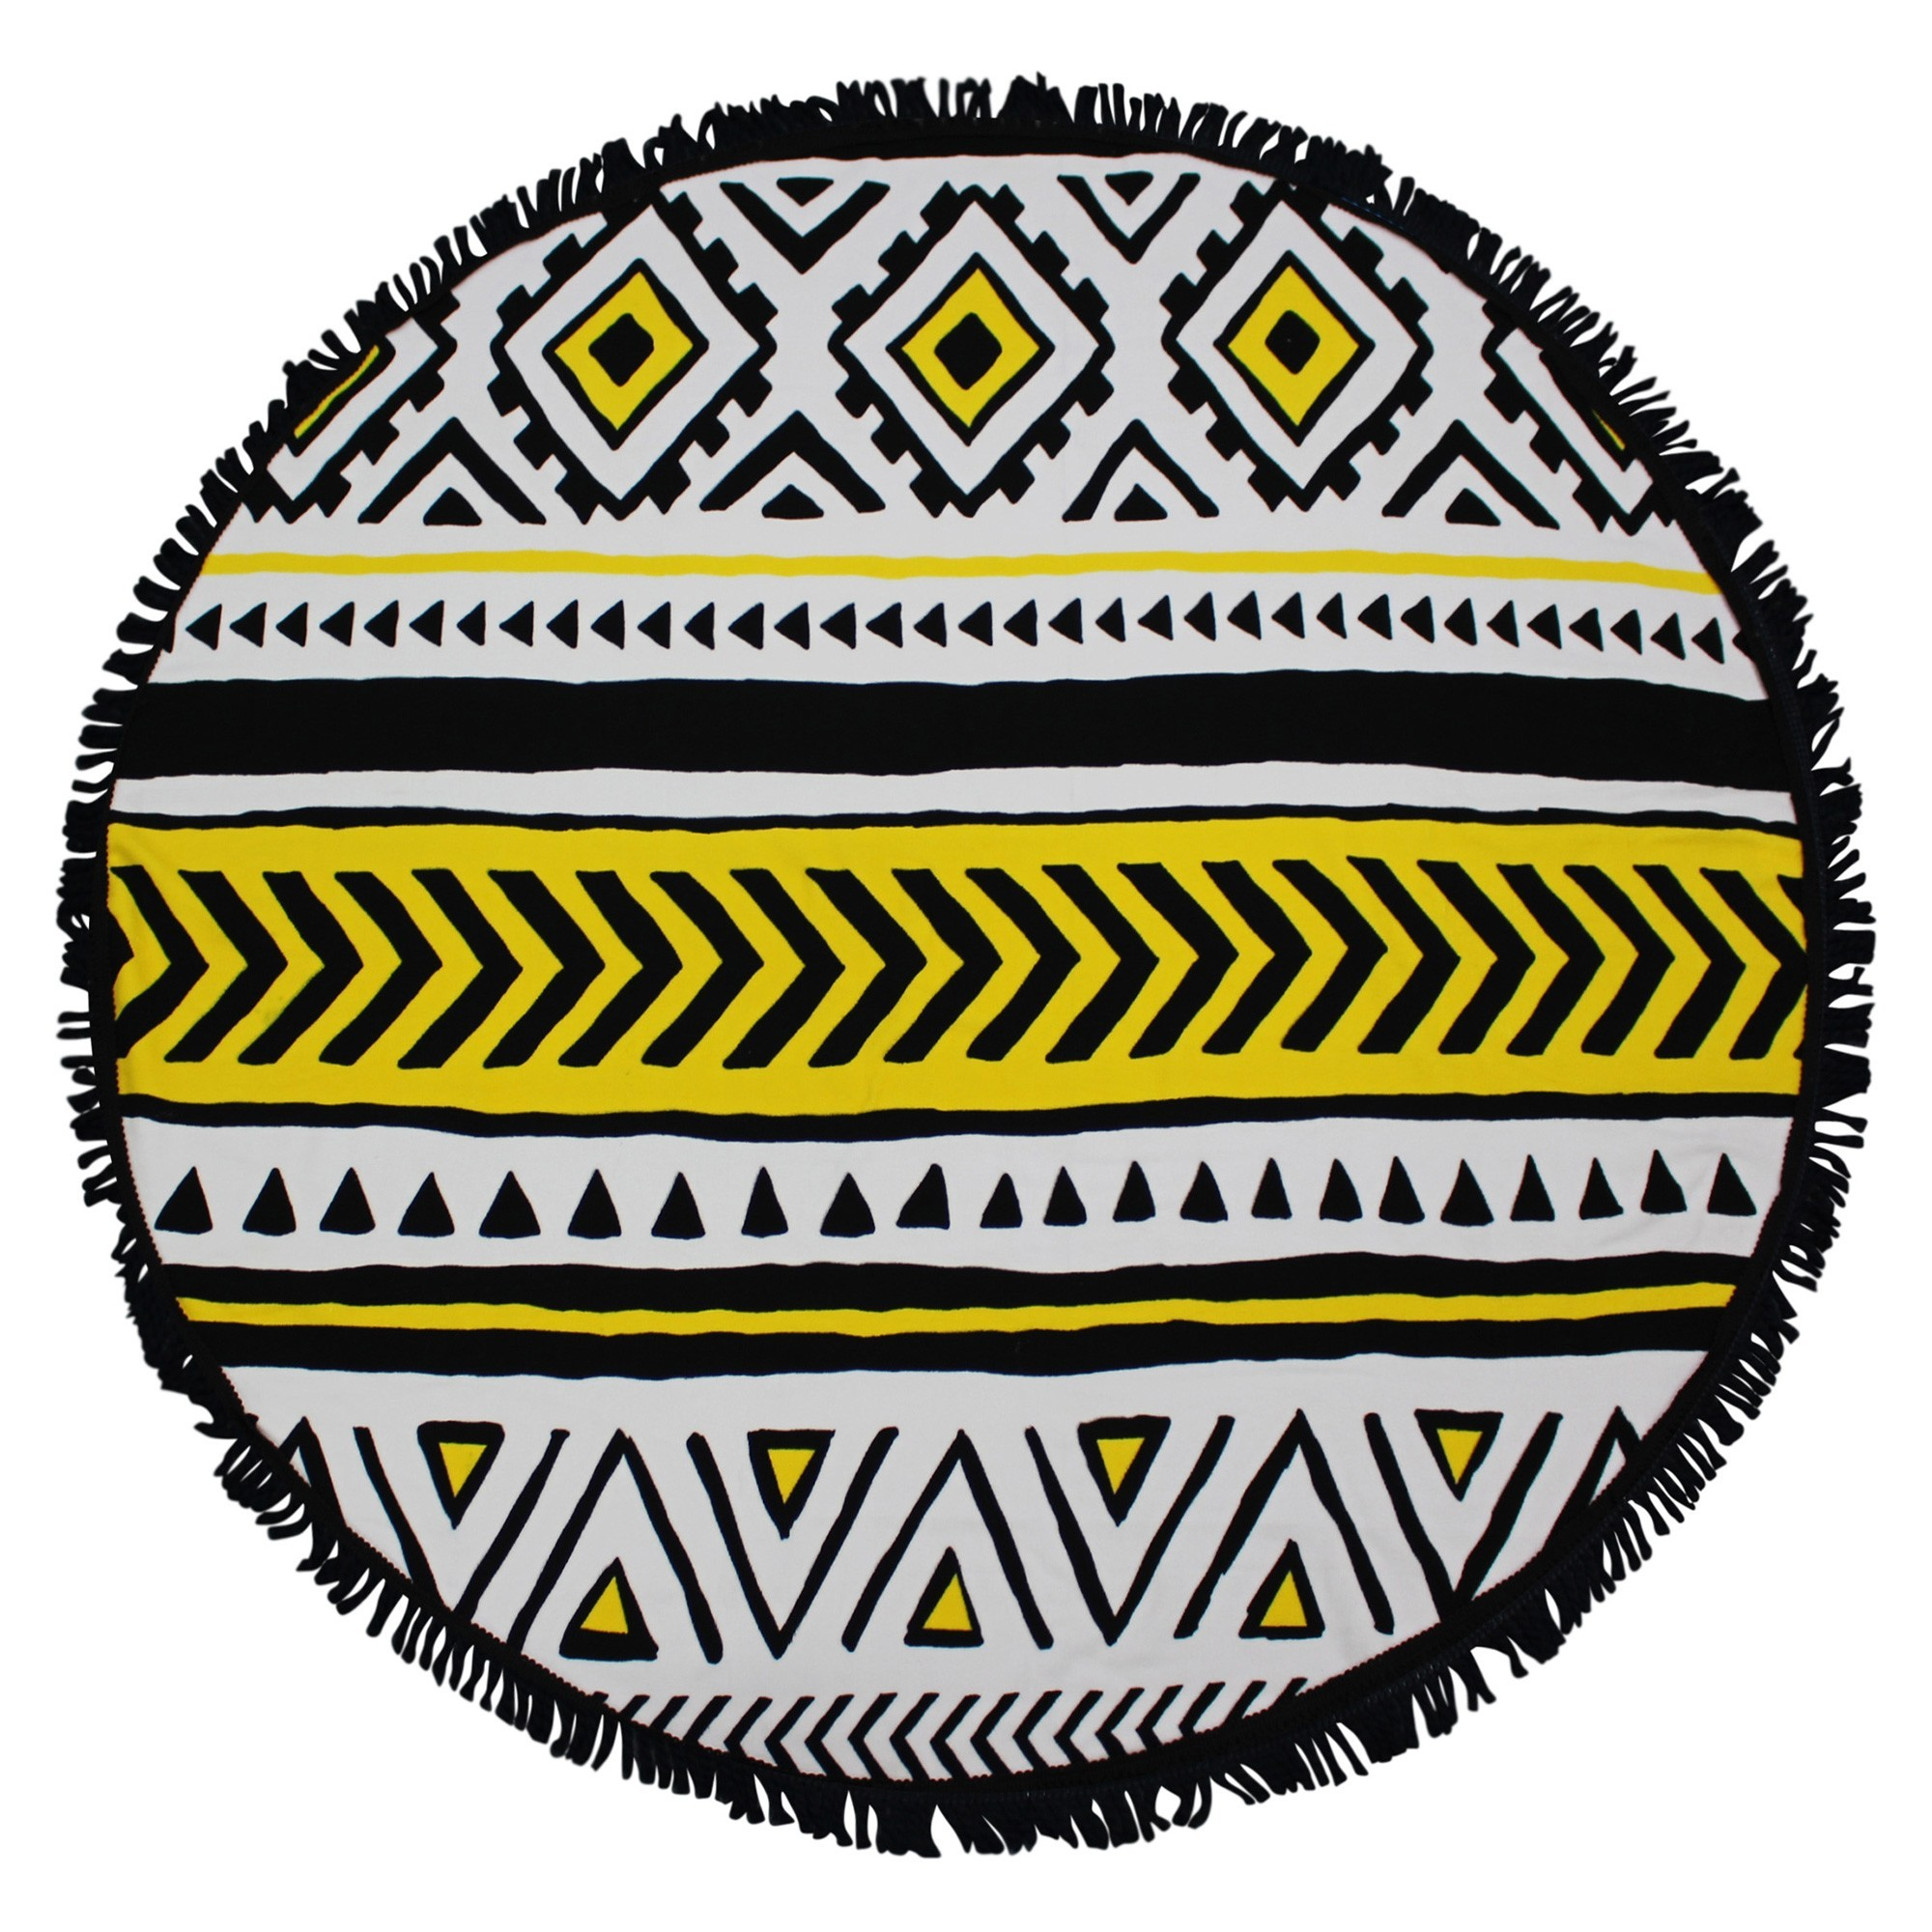 Odyssey Living Microfibre Round Beach Towel, Native, 140cm